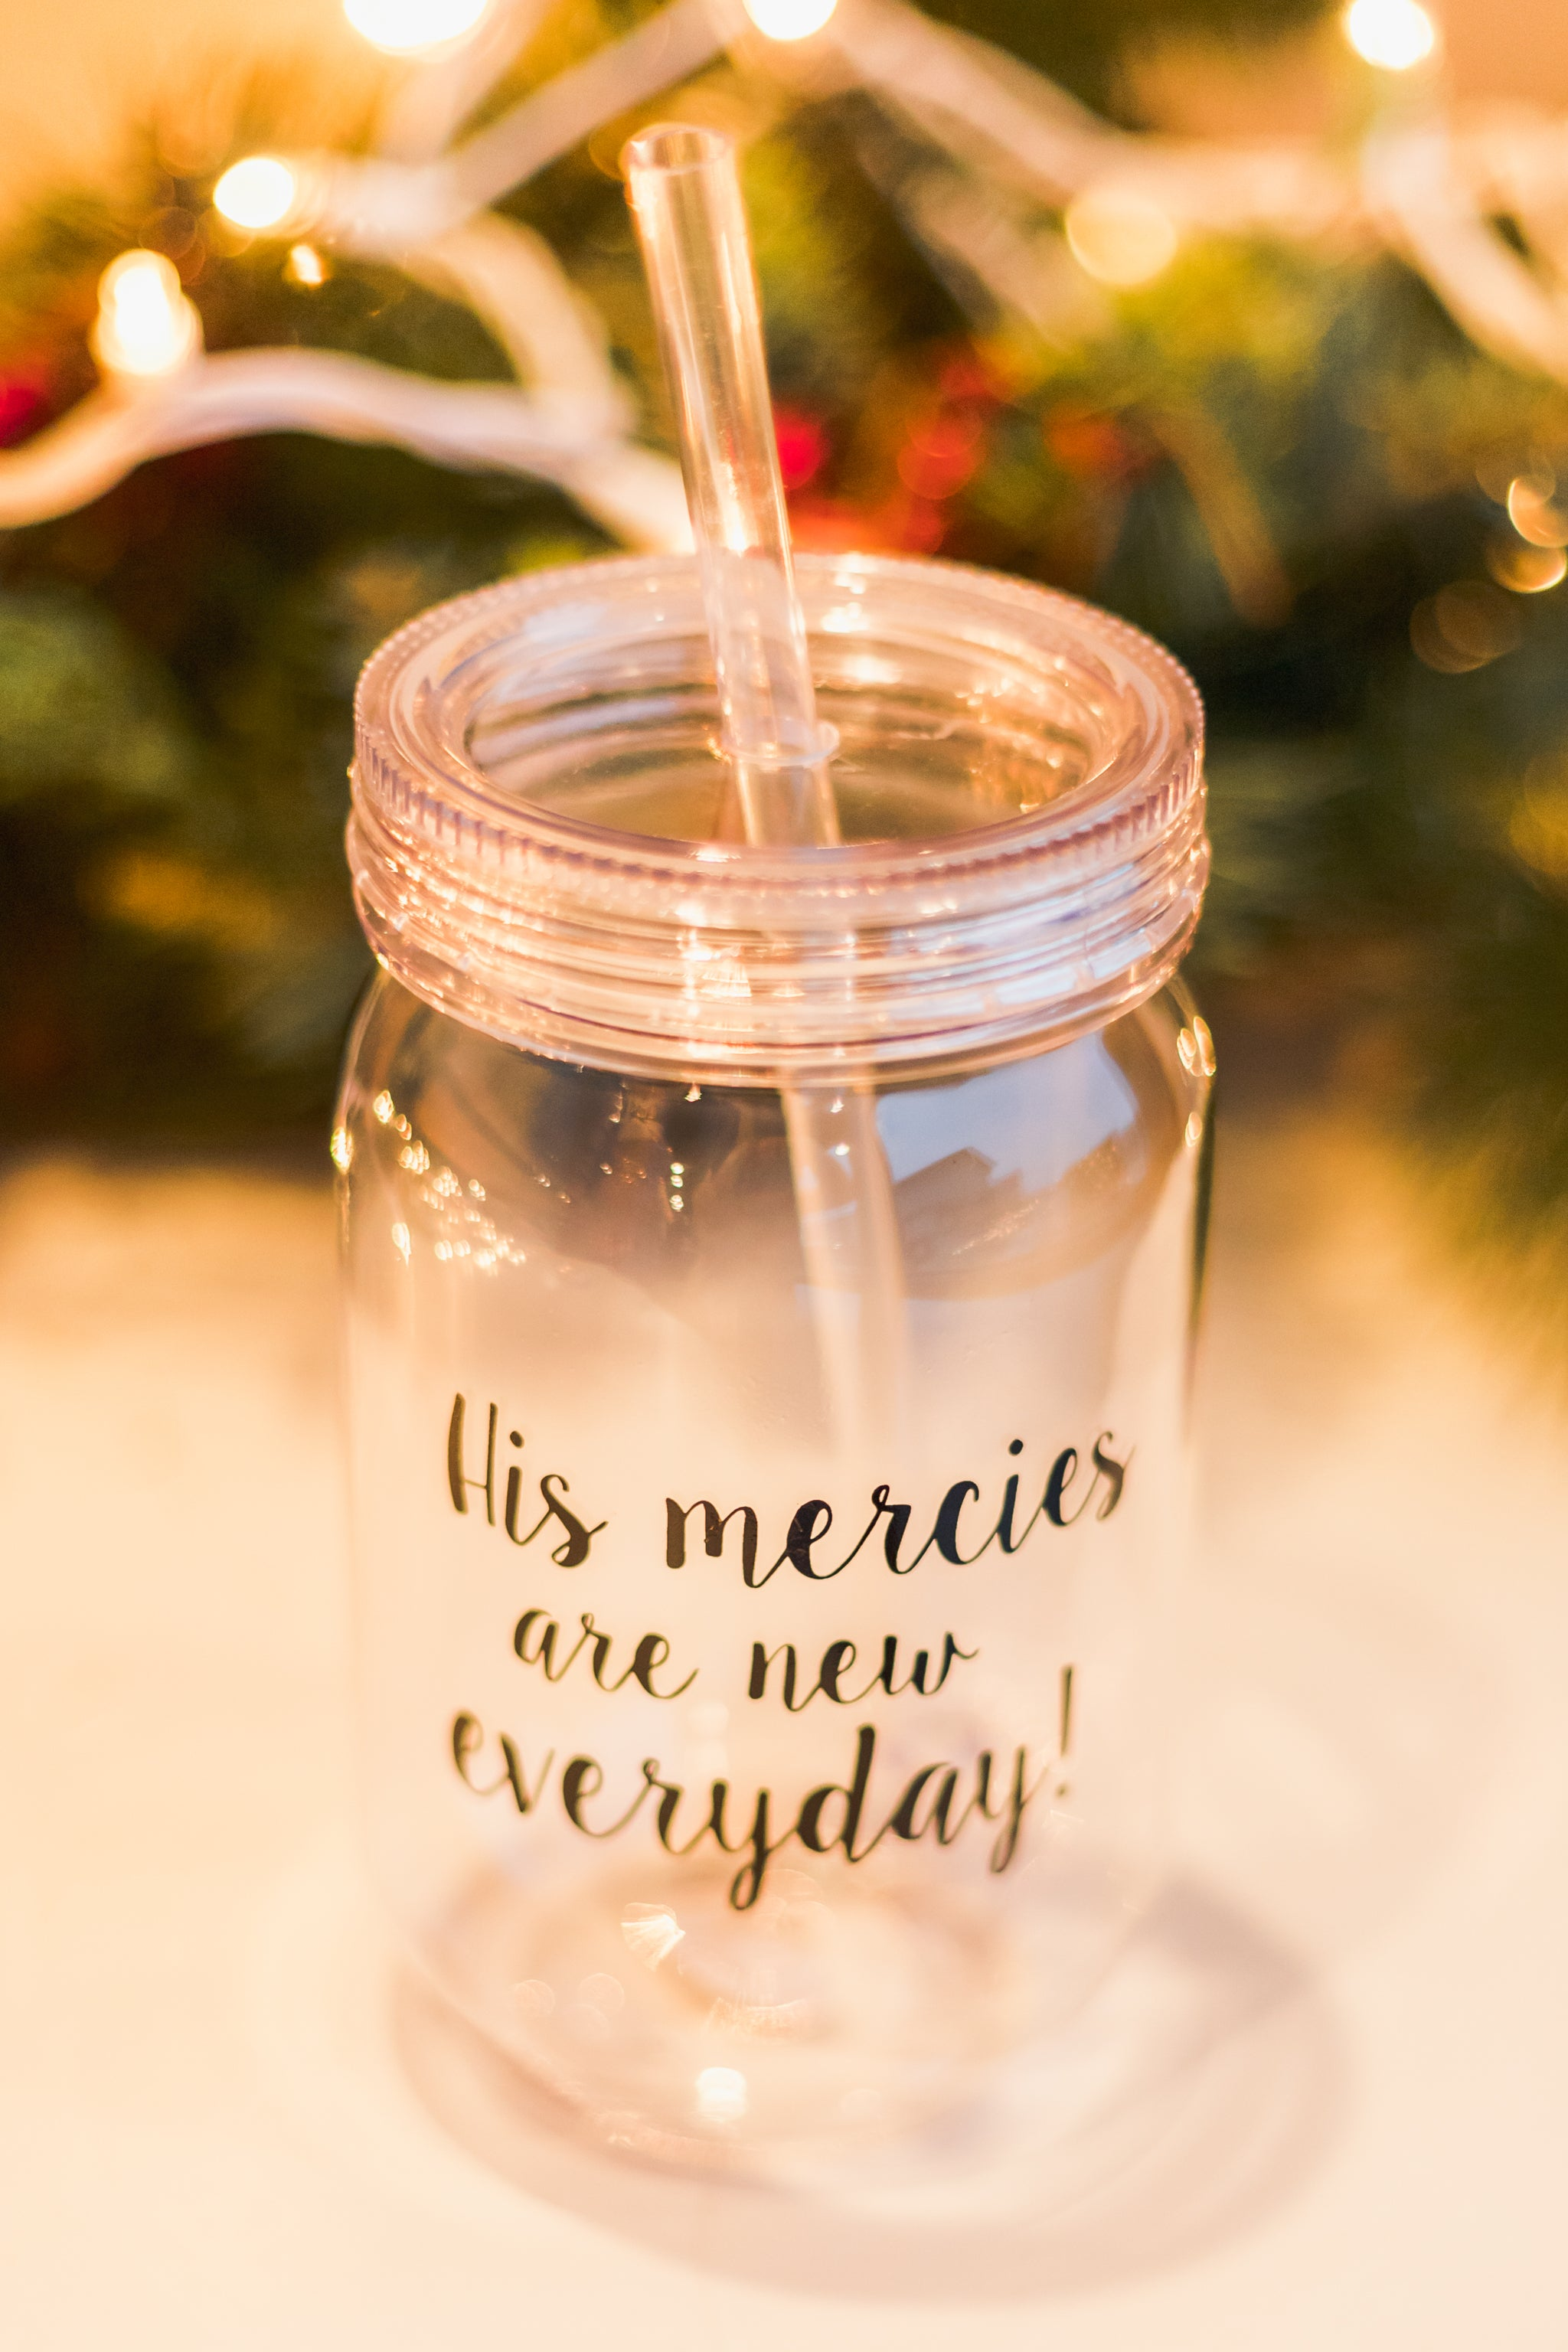 His mercies are new everyday! Mason Jar Tumblr